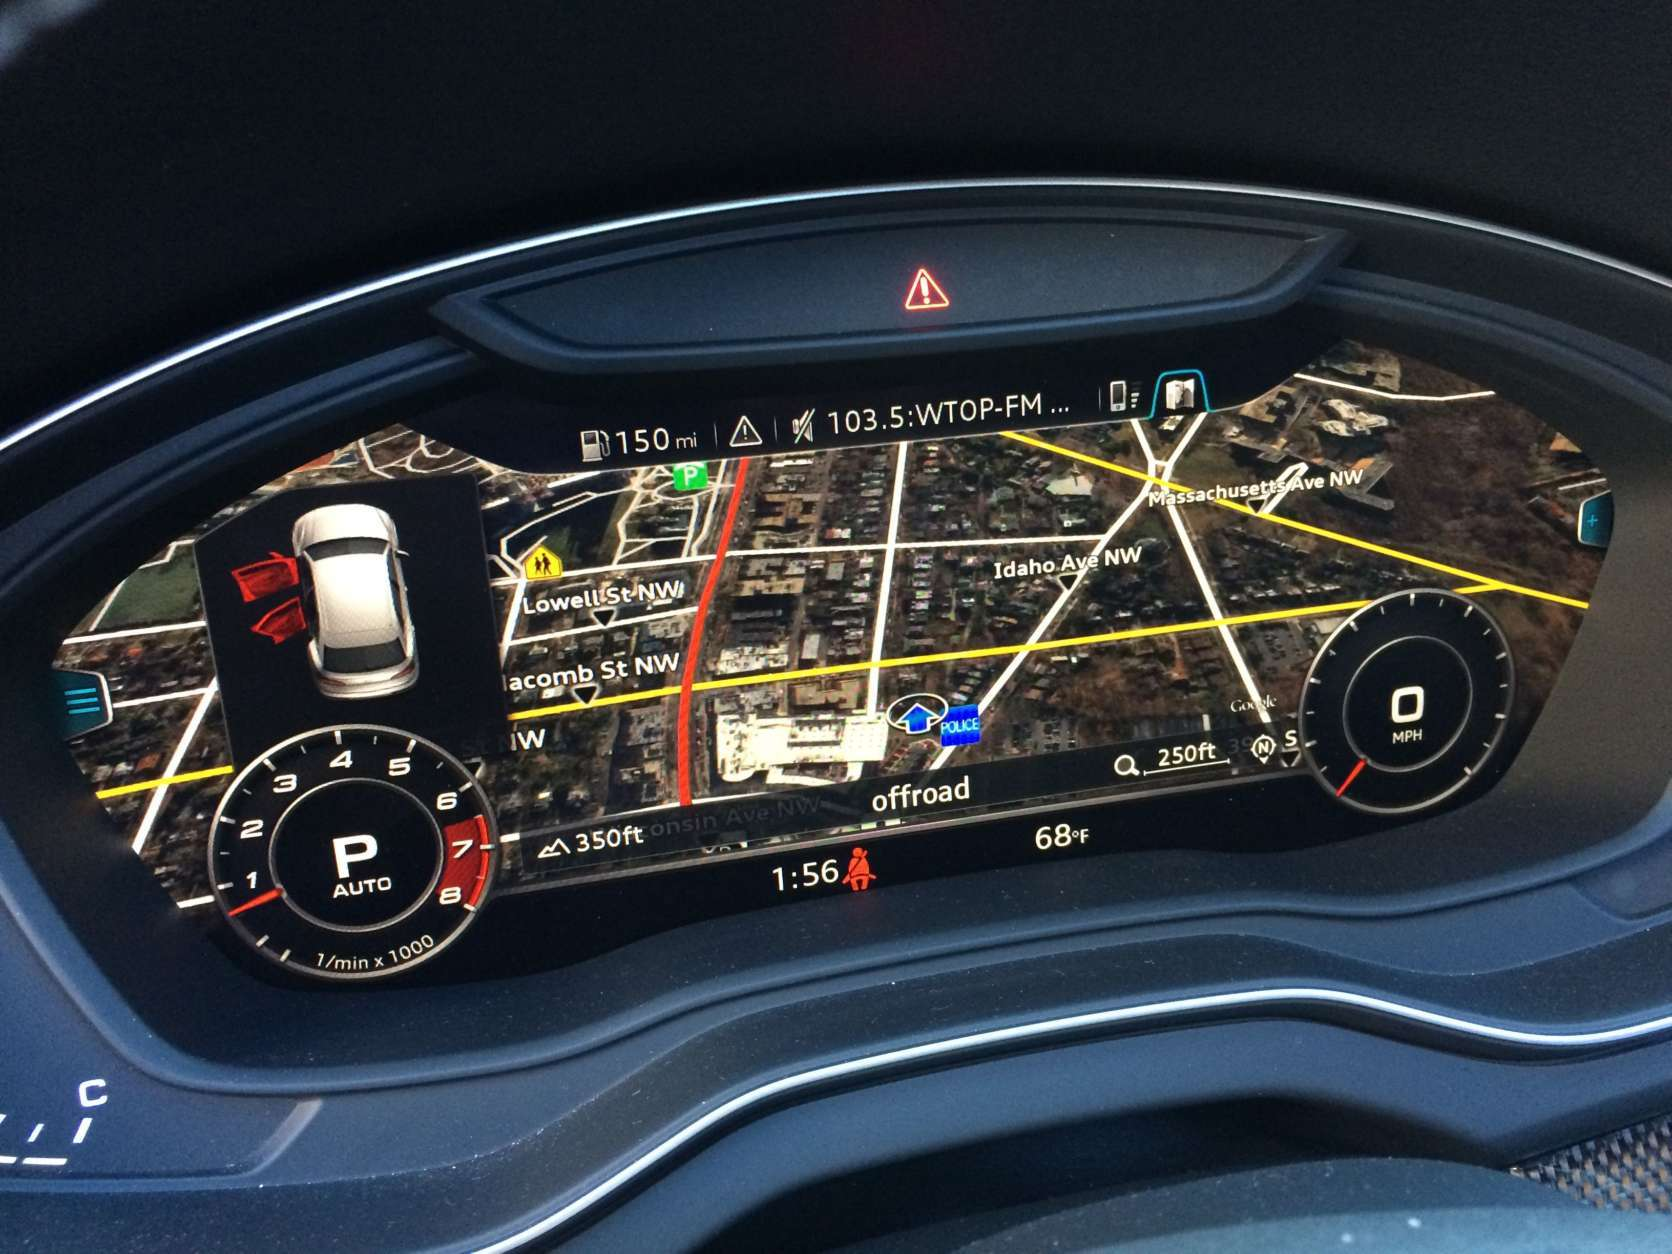 Audi has made adding technology a priority for 2018. The slick, virtual cockpit is part of the Prestige package, which stacks $4,200 onto the price but adds to a cool dash: a glass cockpit lock replacing the mechanical gauges with virtual ones. You can even have the map there so you don't have to look at the center dash. (WTOP/Mike Parris)